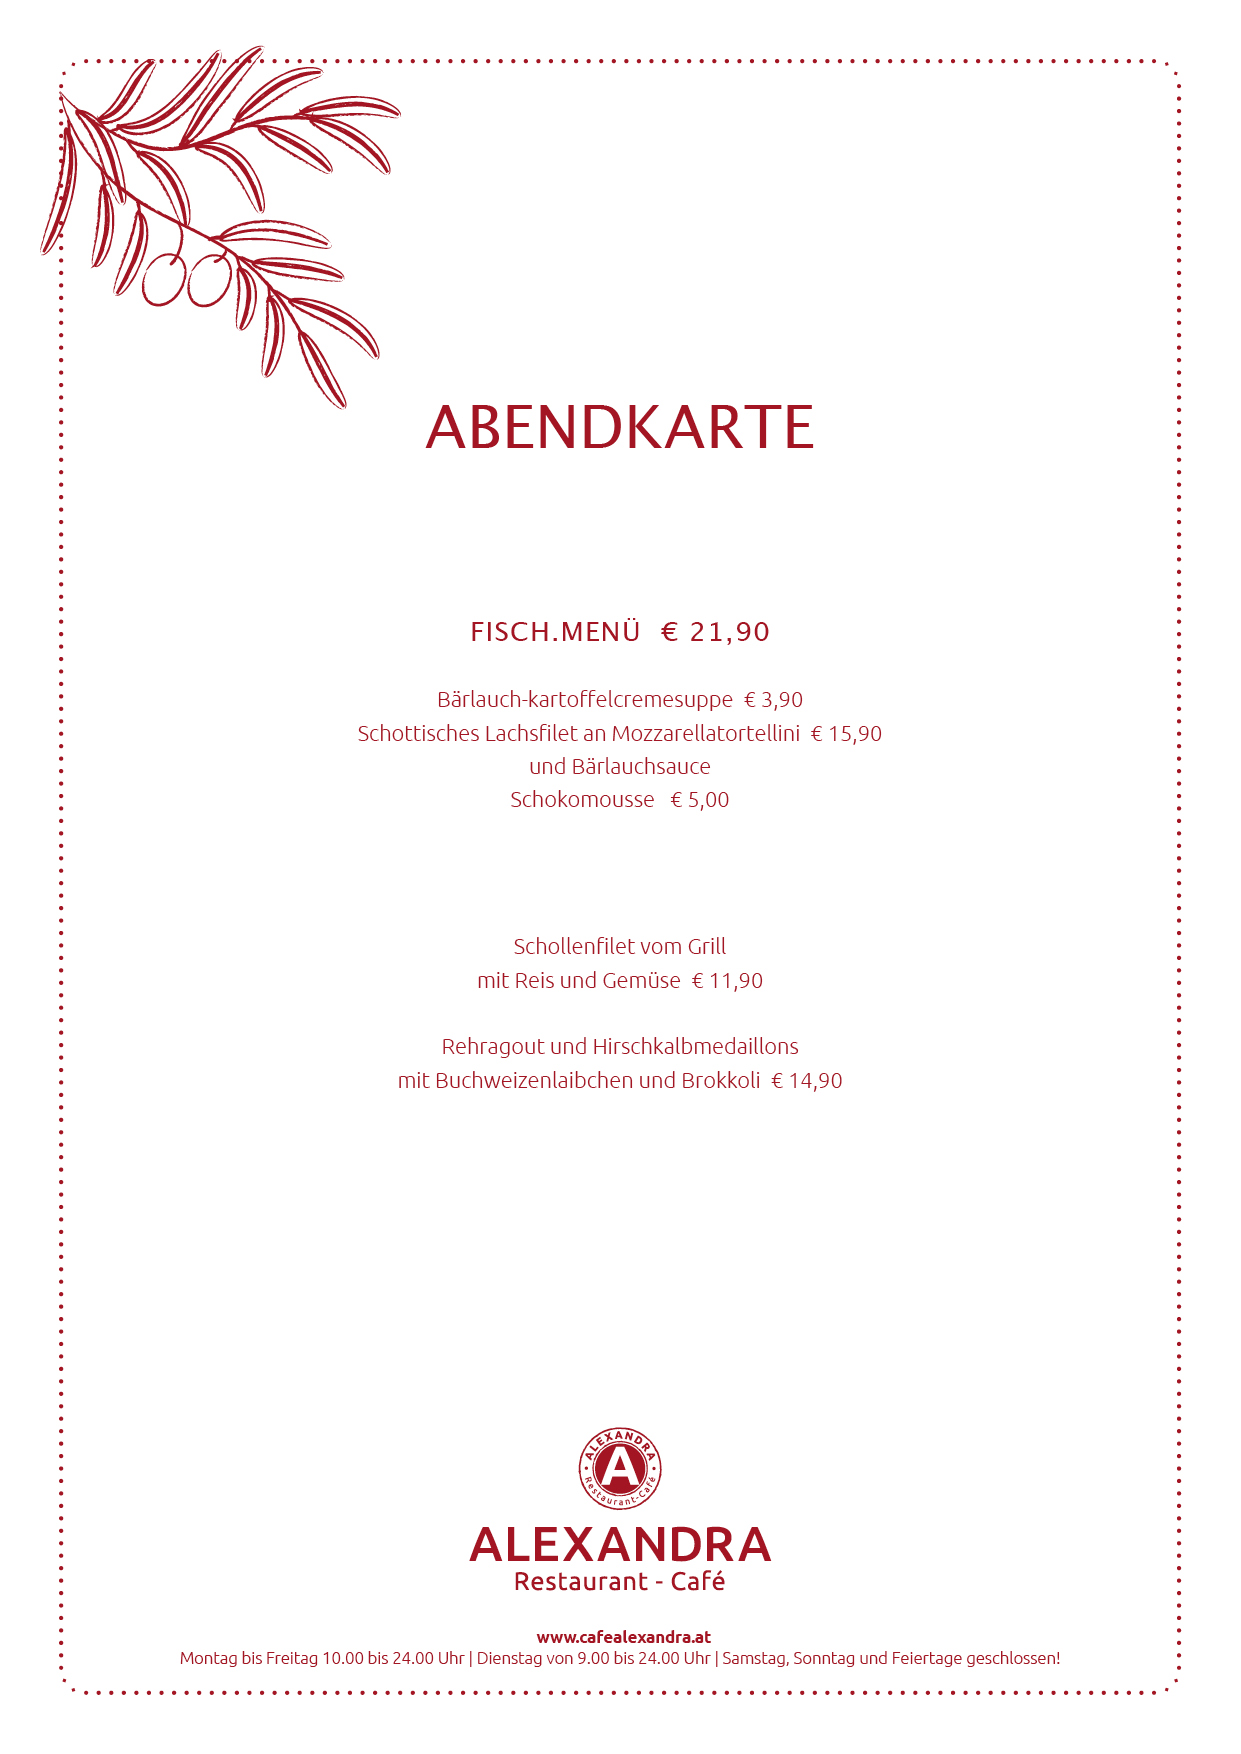 Cafe Restaurant Alexandra Abendmenue 2014 KW März 01